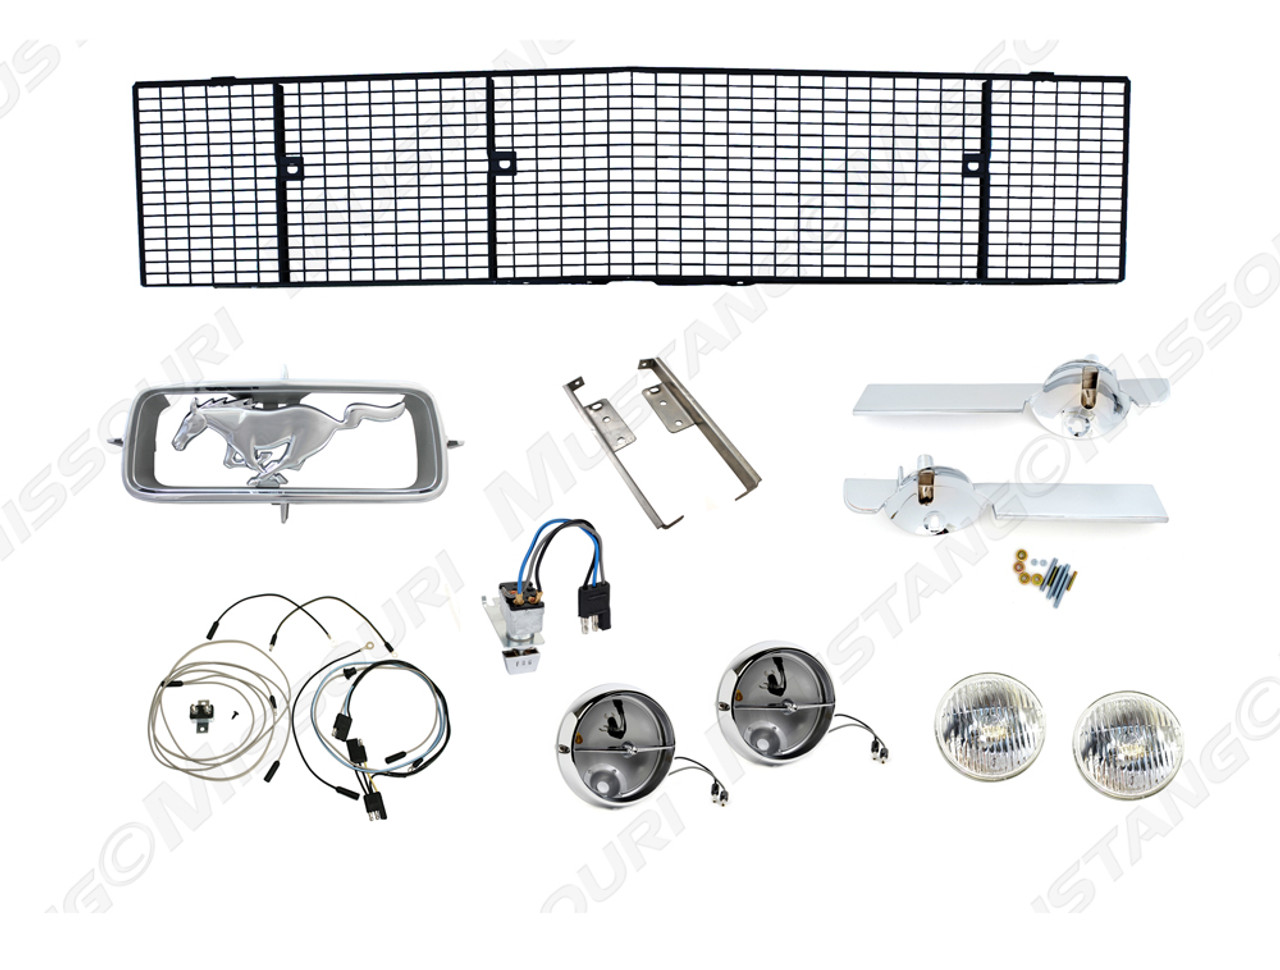 1967 Ford Mustang fog light conversion kit with grille.